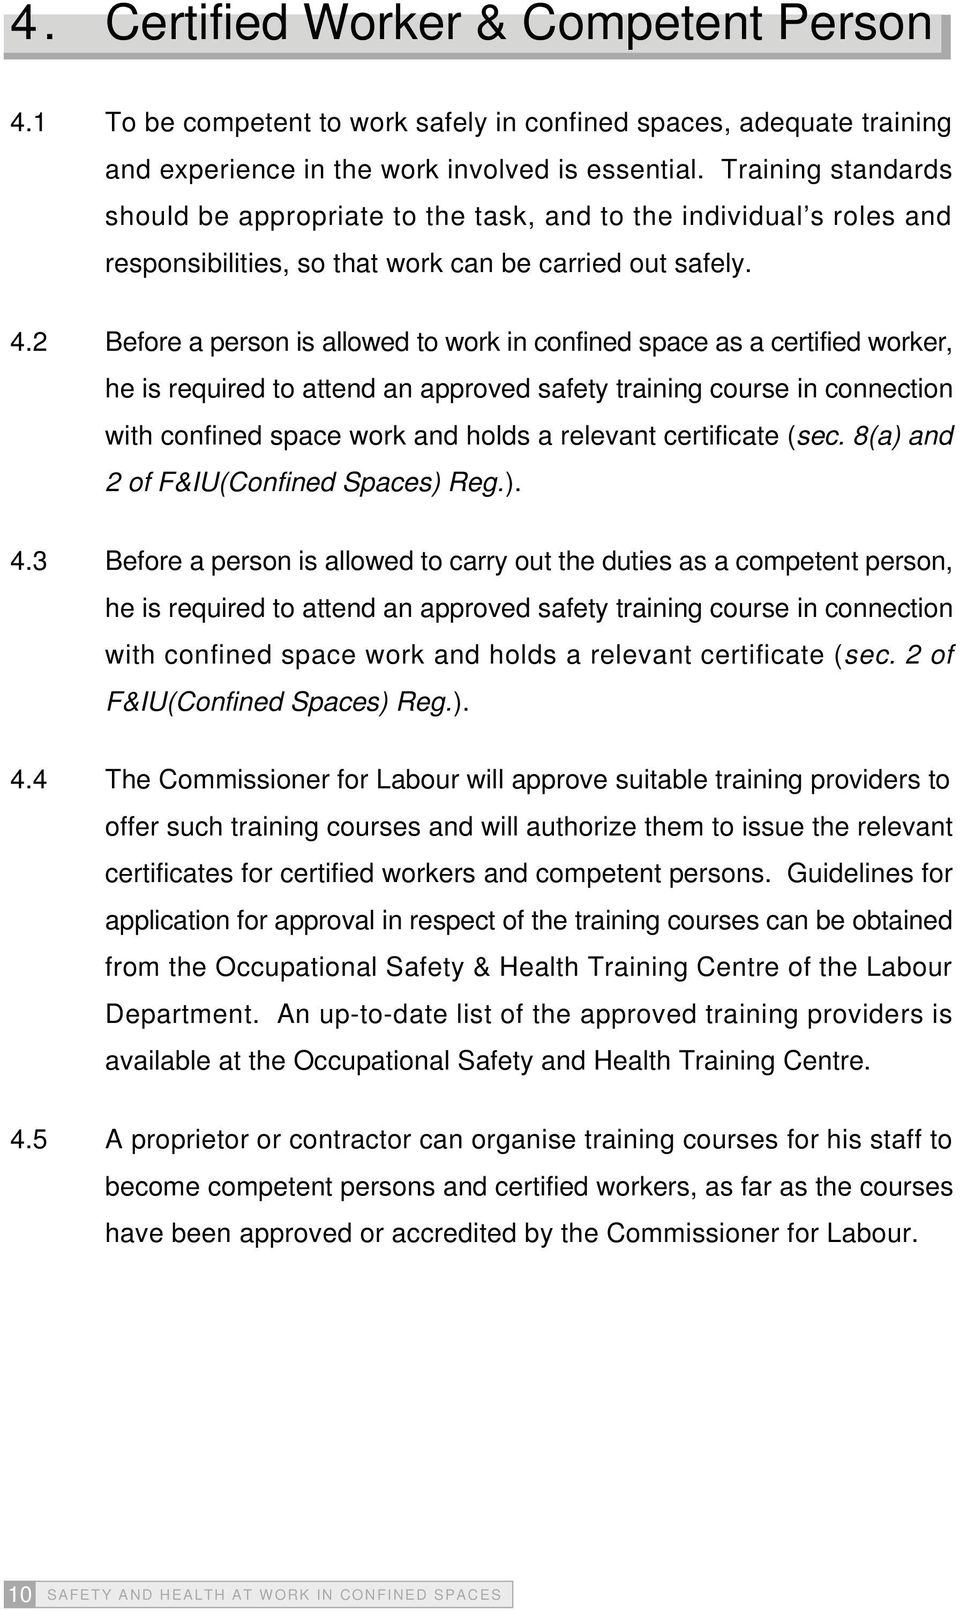 2 Before a person is allowed to work in confined space as a certified worker, he is required to attend an approved safety training course in connection with confined space work and holds a relevant